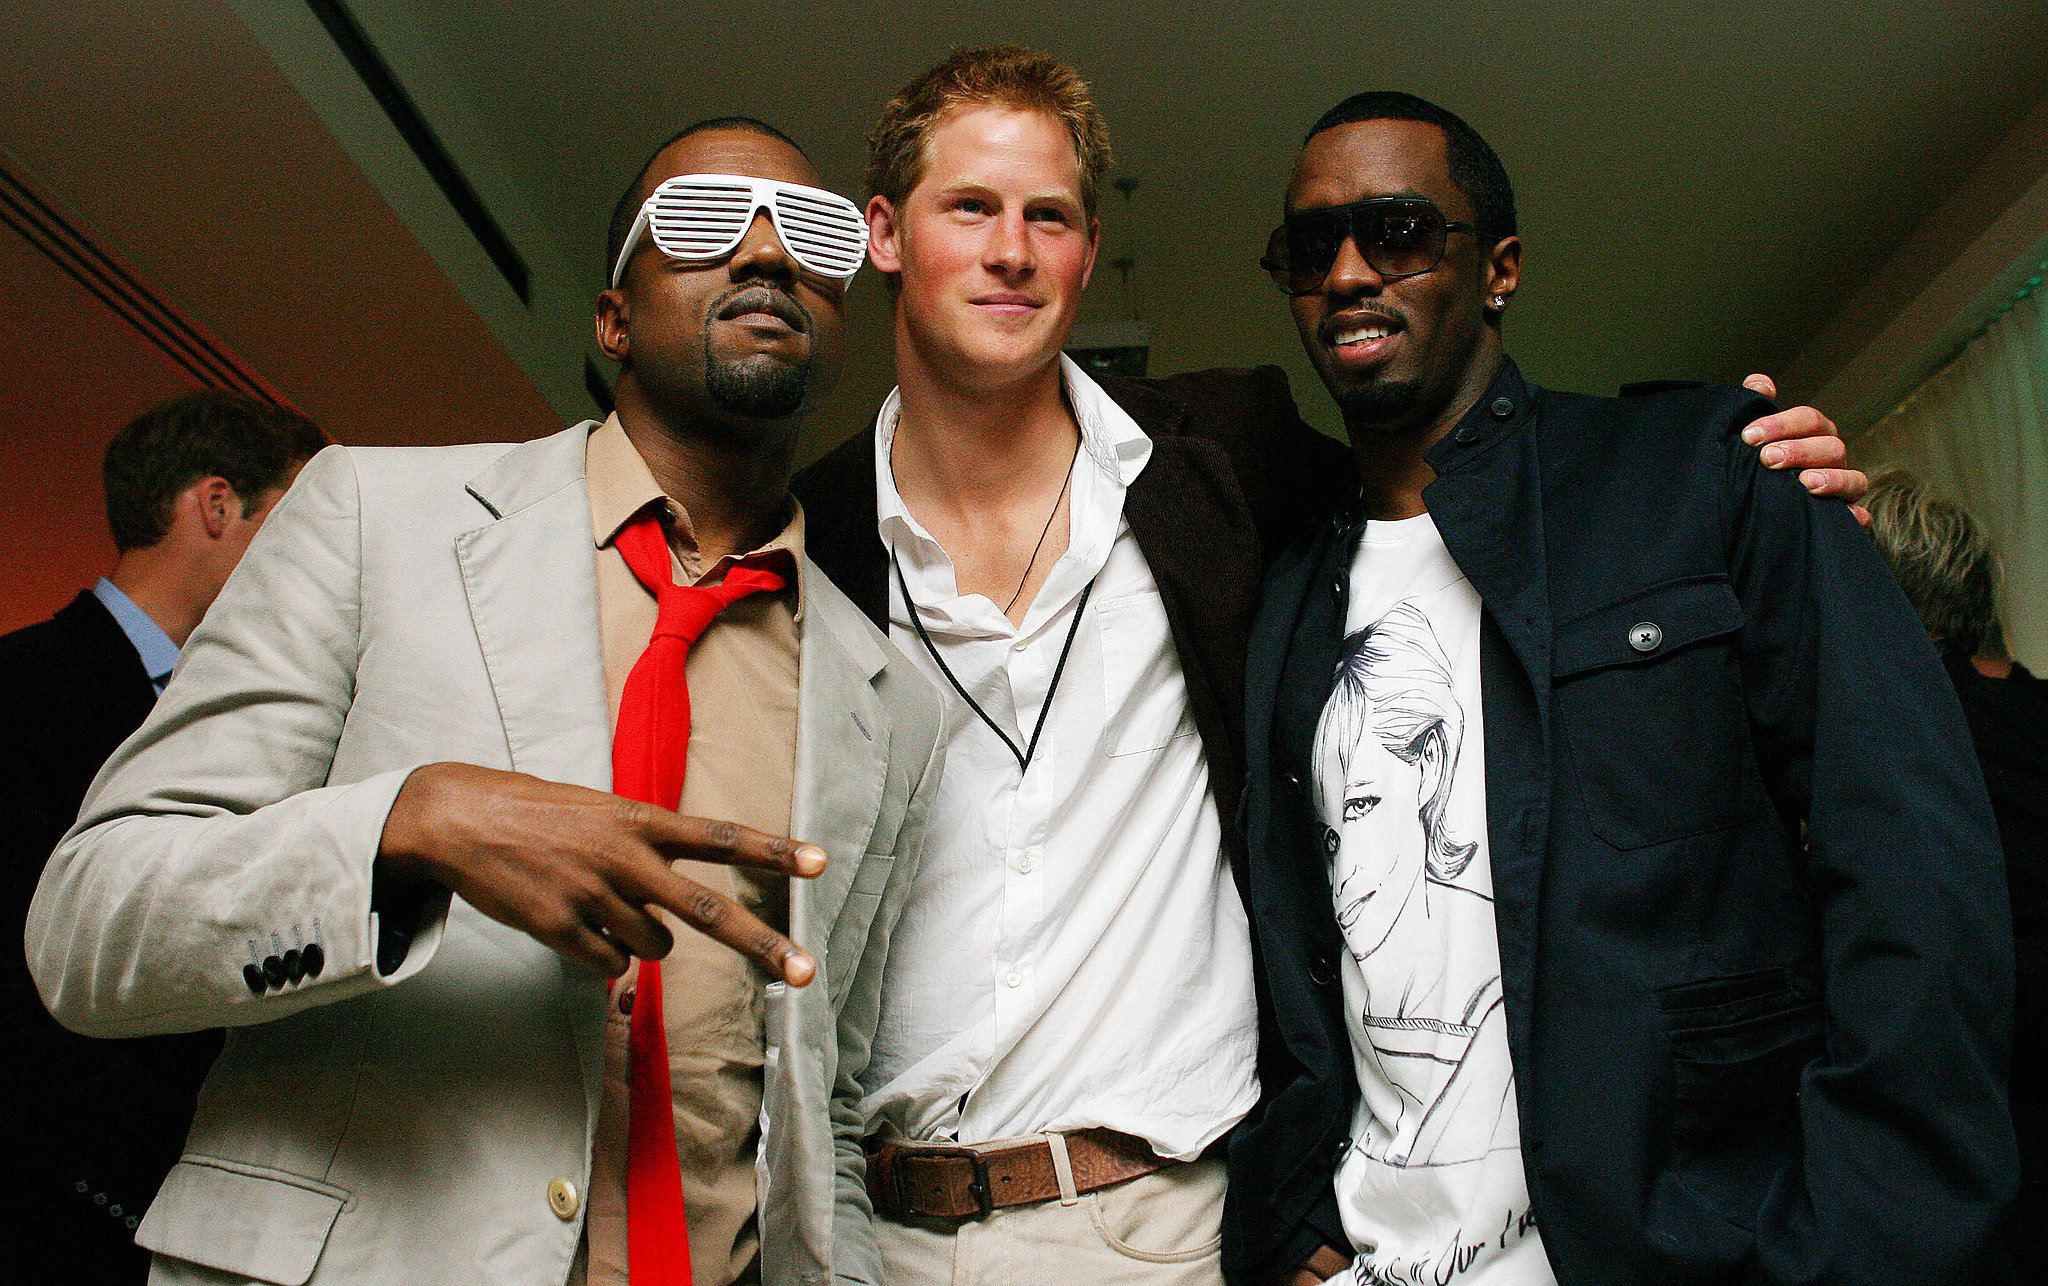 Prince Harry posed with Diddy and Kanye West at Wembley Arena after the tribute concert for Princess Diana in 2007.